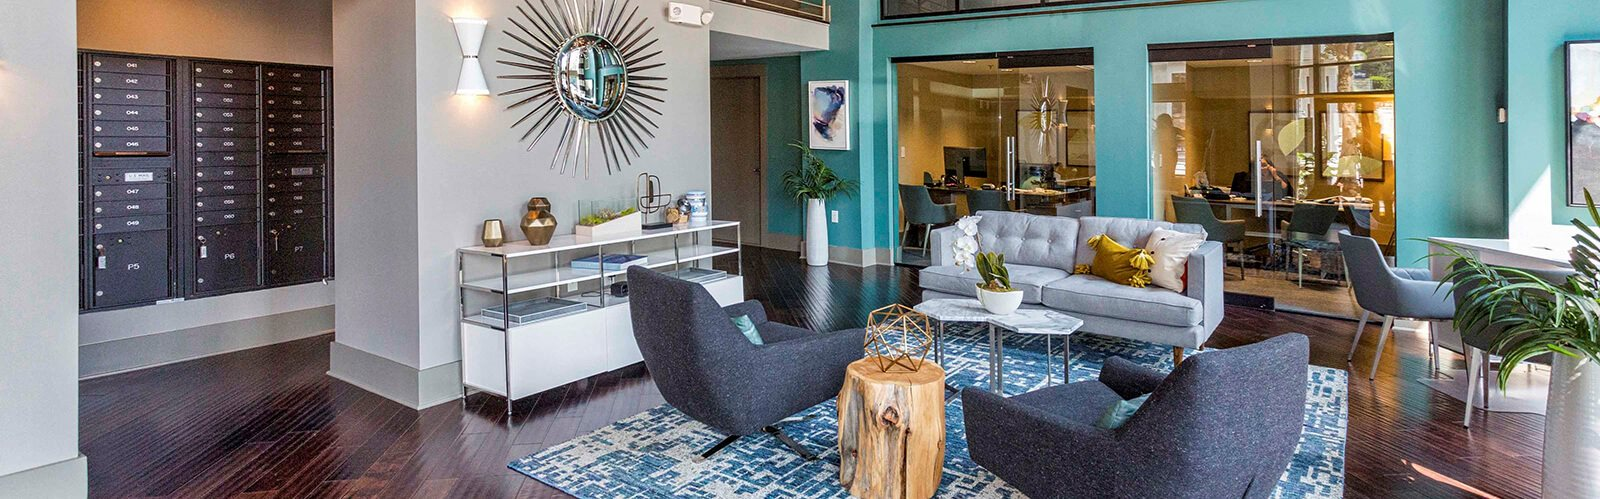 Resident Lounge and Gathering Room at 712 Tucker, Raleigh, NC